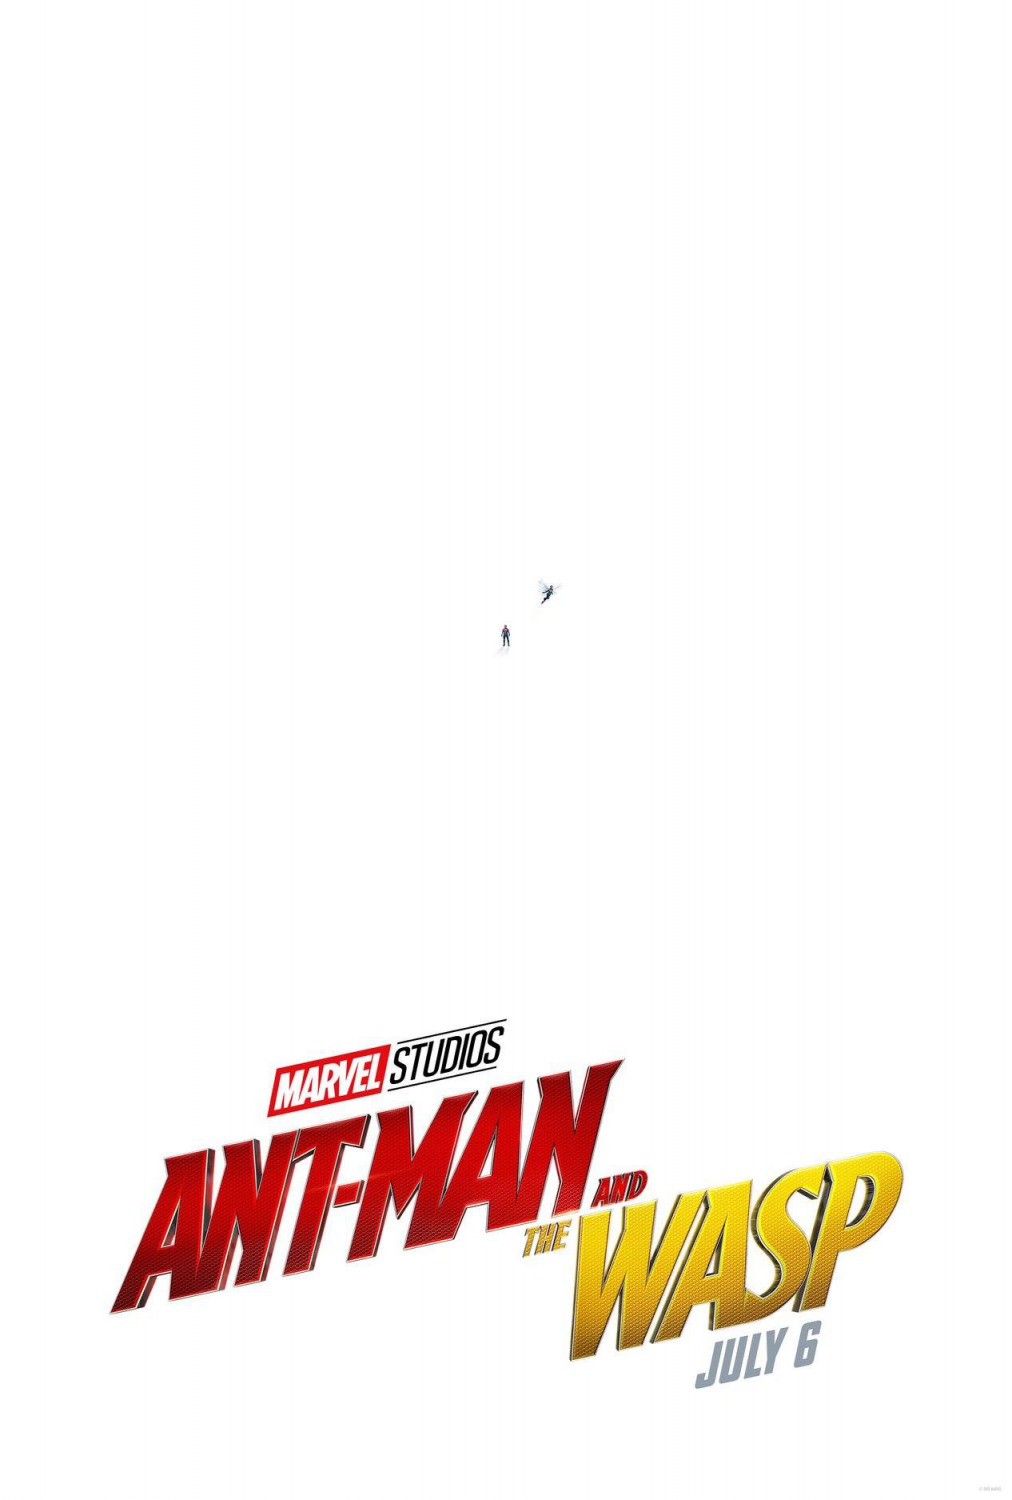 antman_and_the_wasp_xlg.jpg